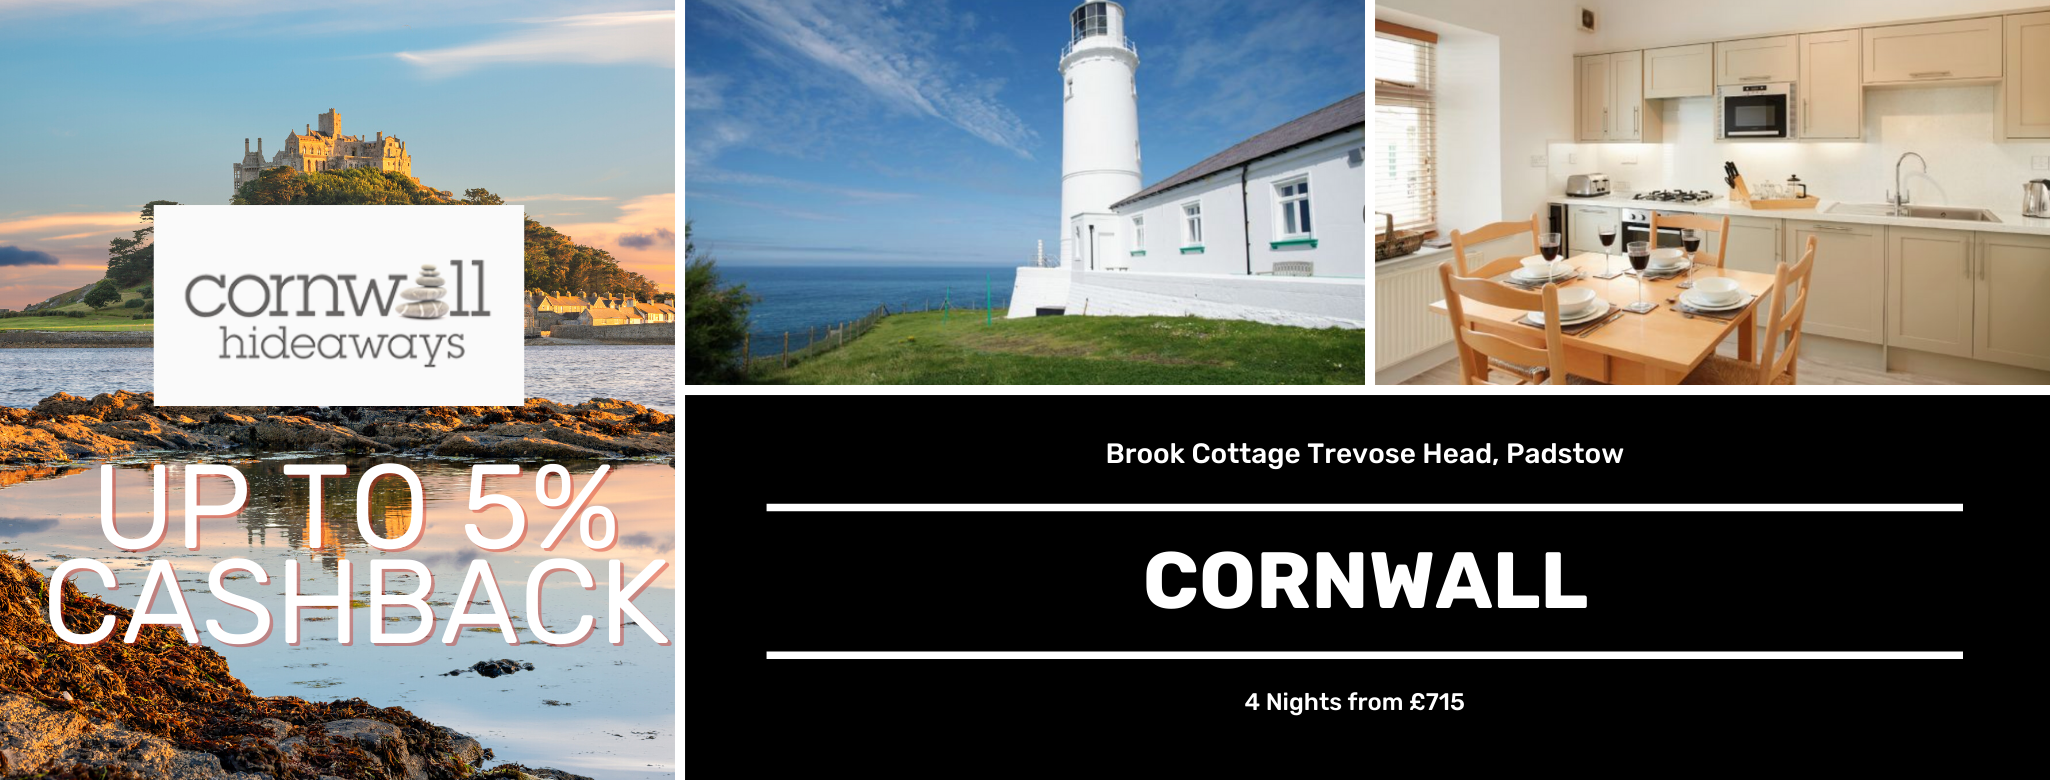 Cornwall Hideaways Cornwall Up to 5% Cashback